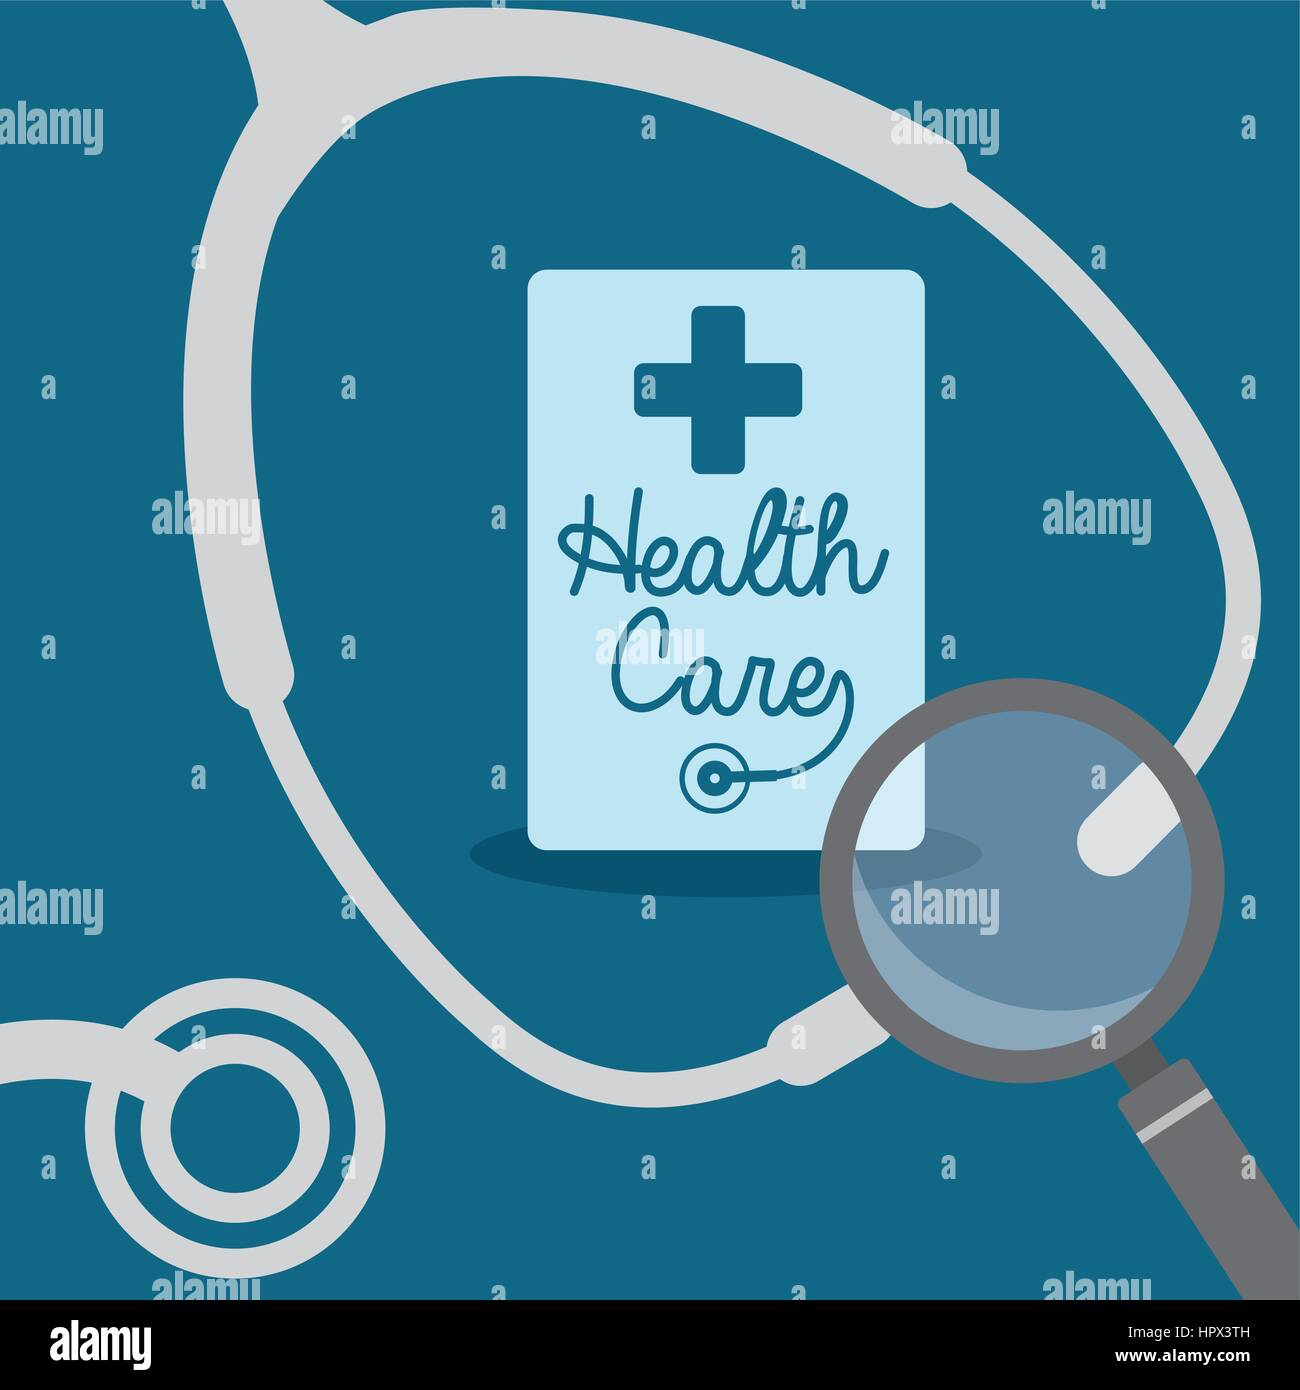 stethoscope search health care - Stock Vector